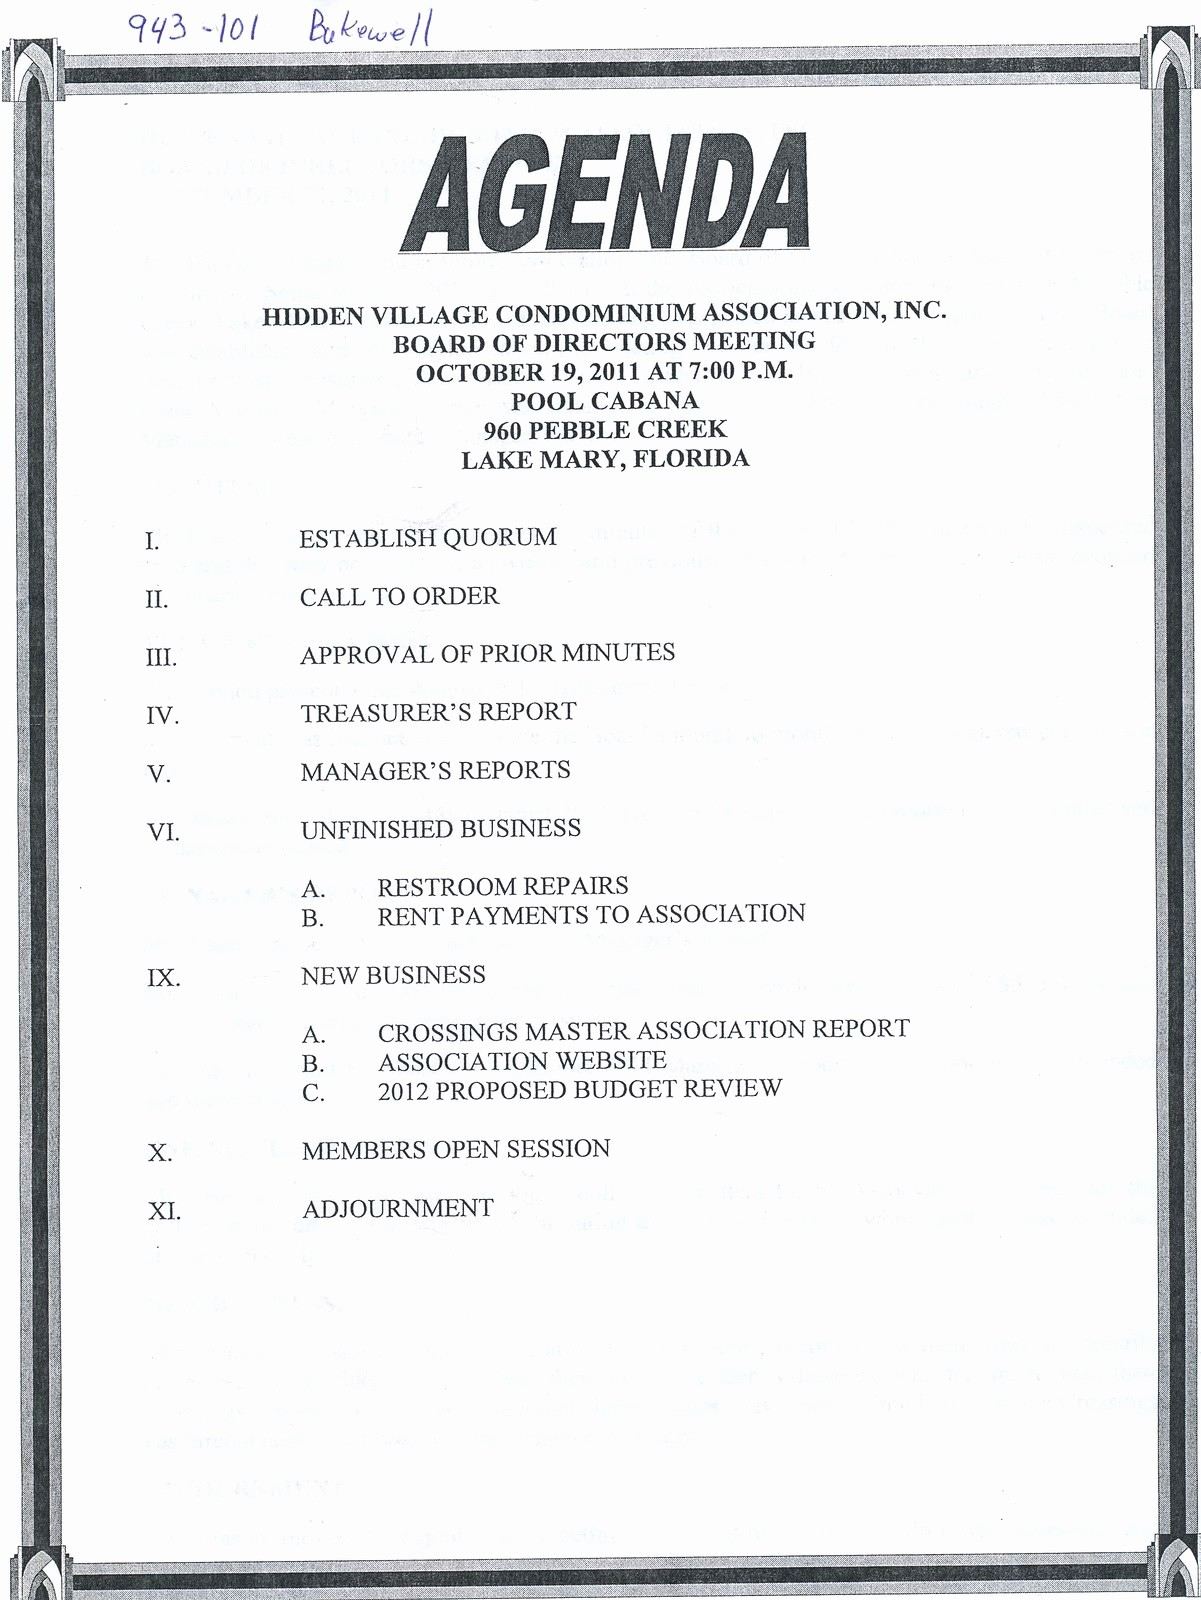 Agenda format for A Meeting Inspirational How to Create An Agenda In Word Portablegasgrillweber